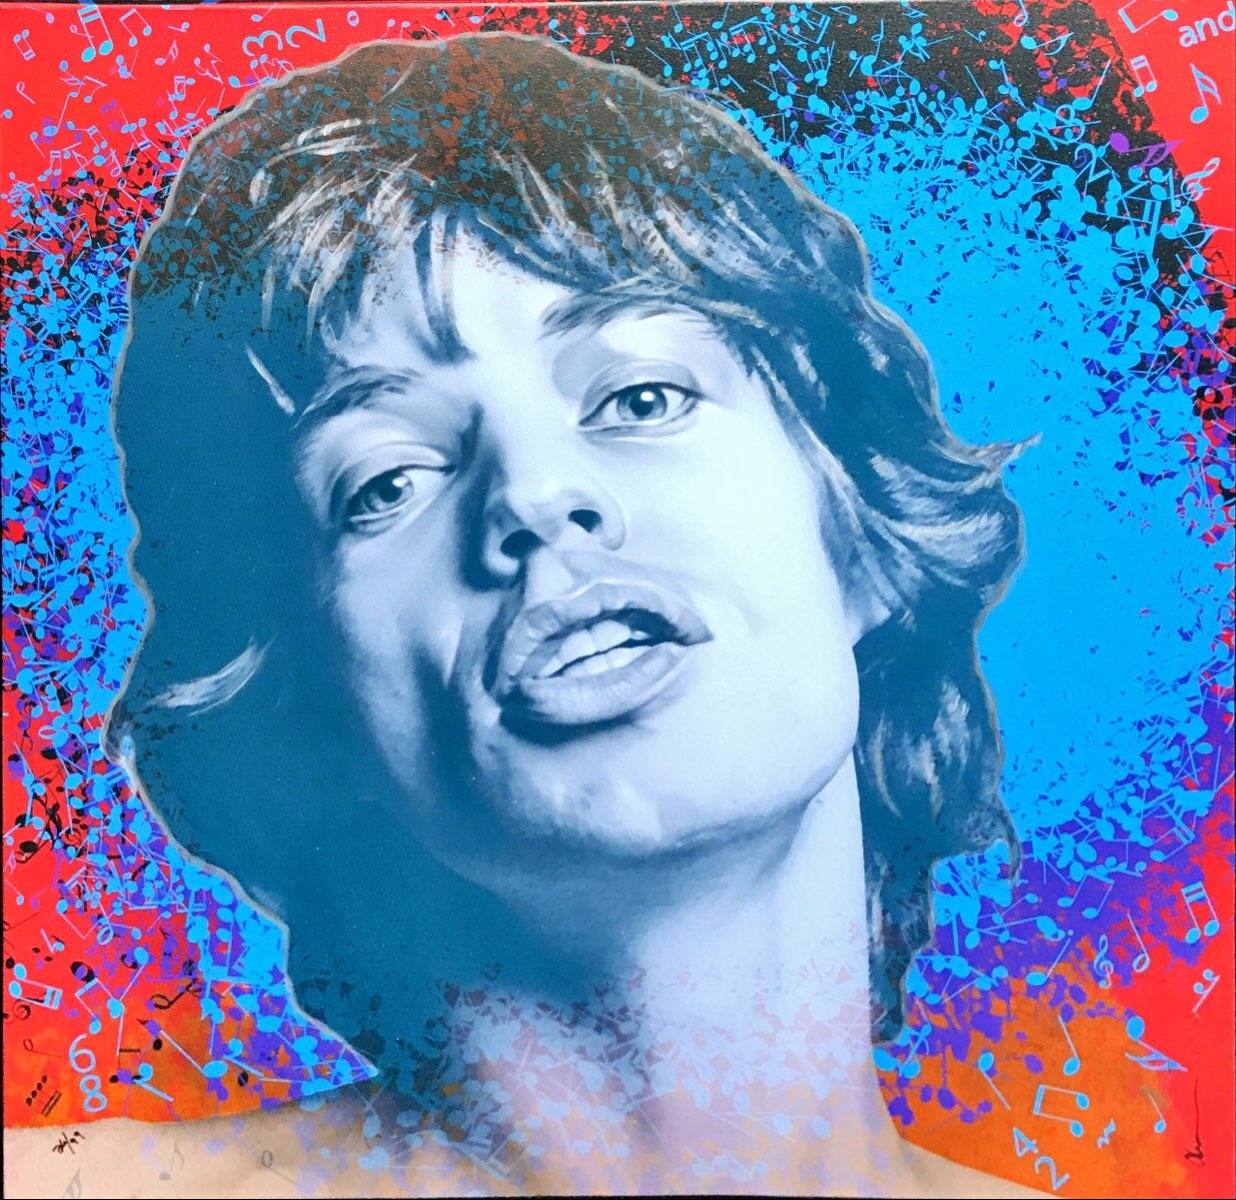 Let the Music Play: Mick Jagger